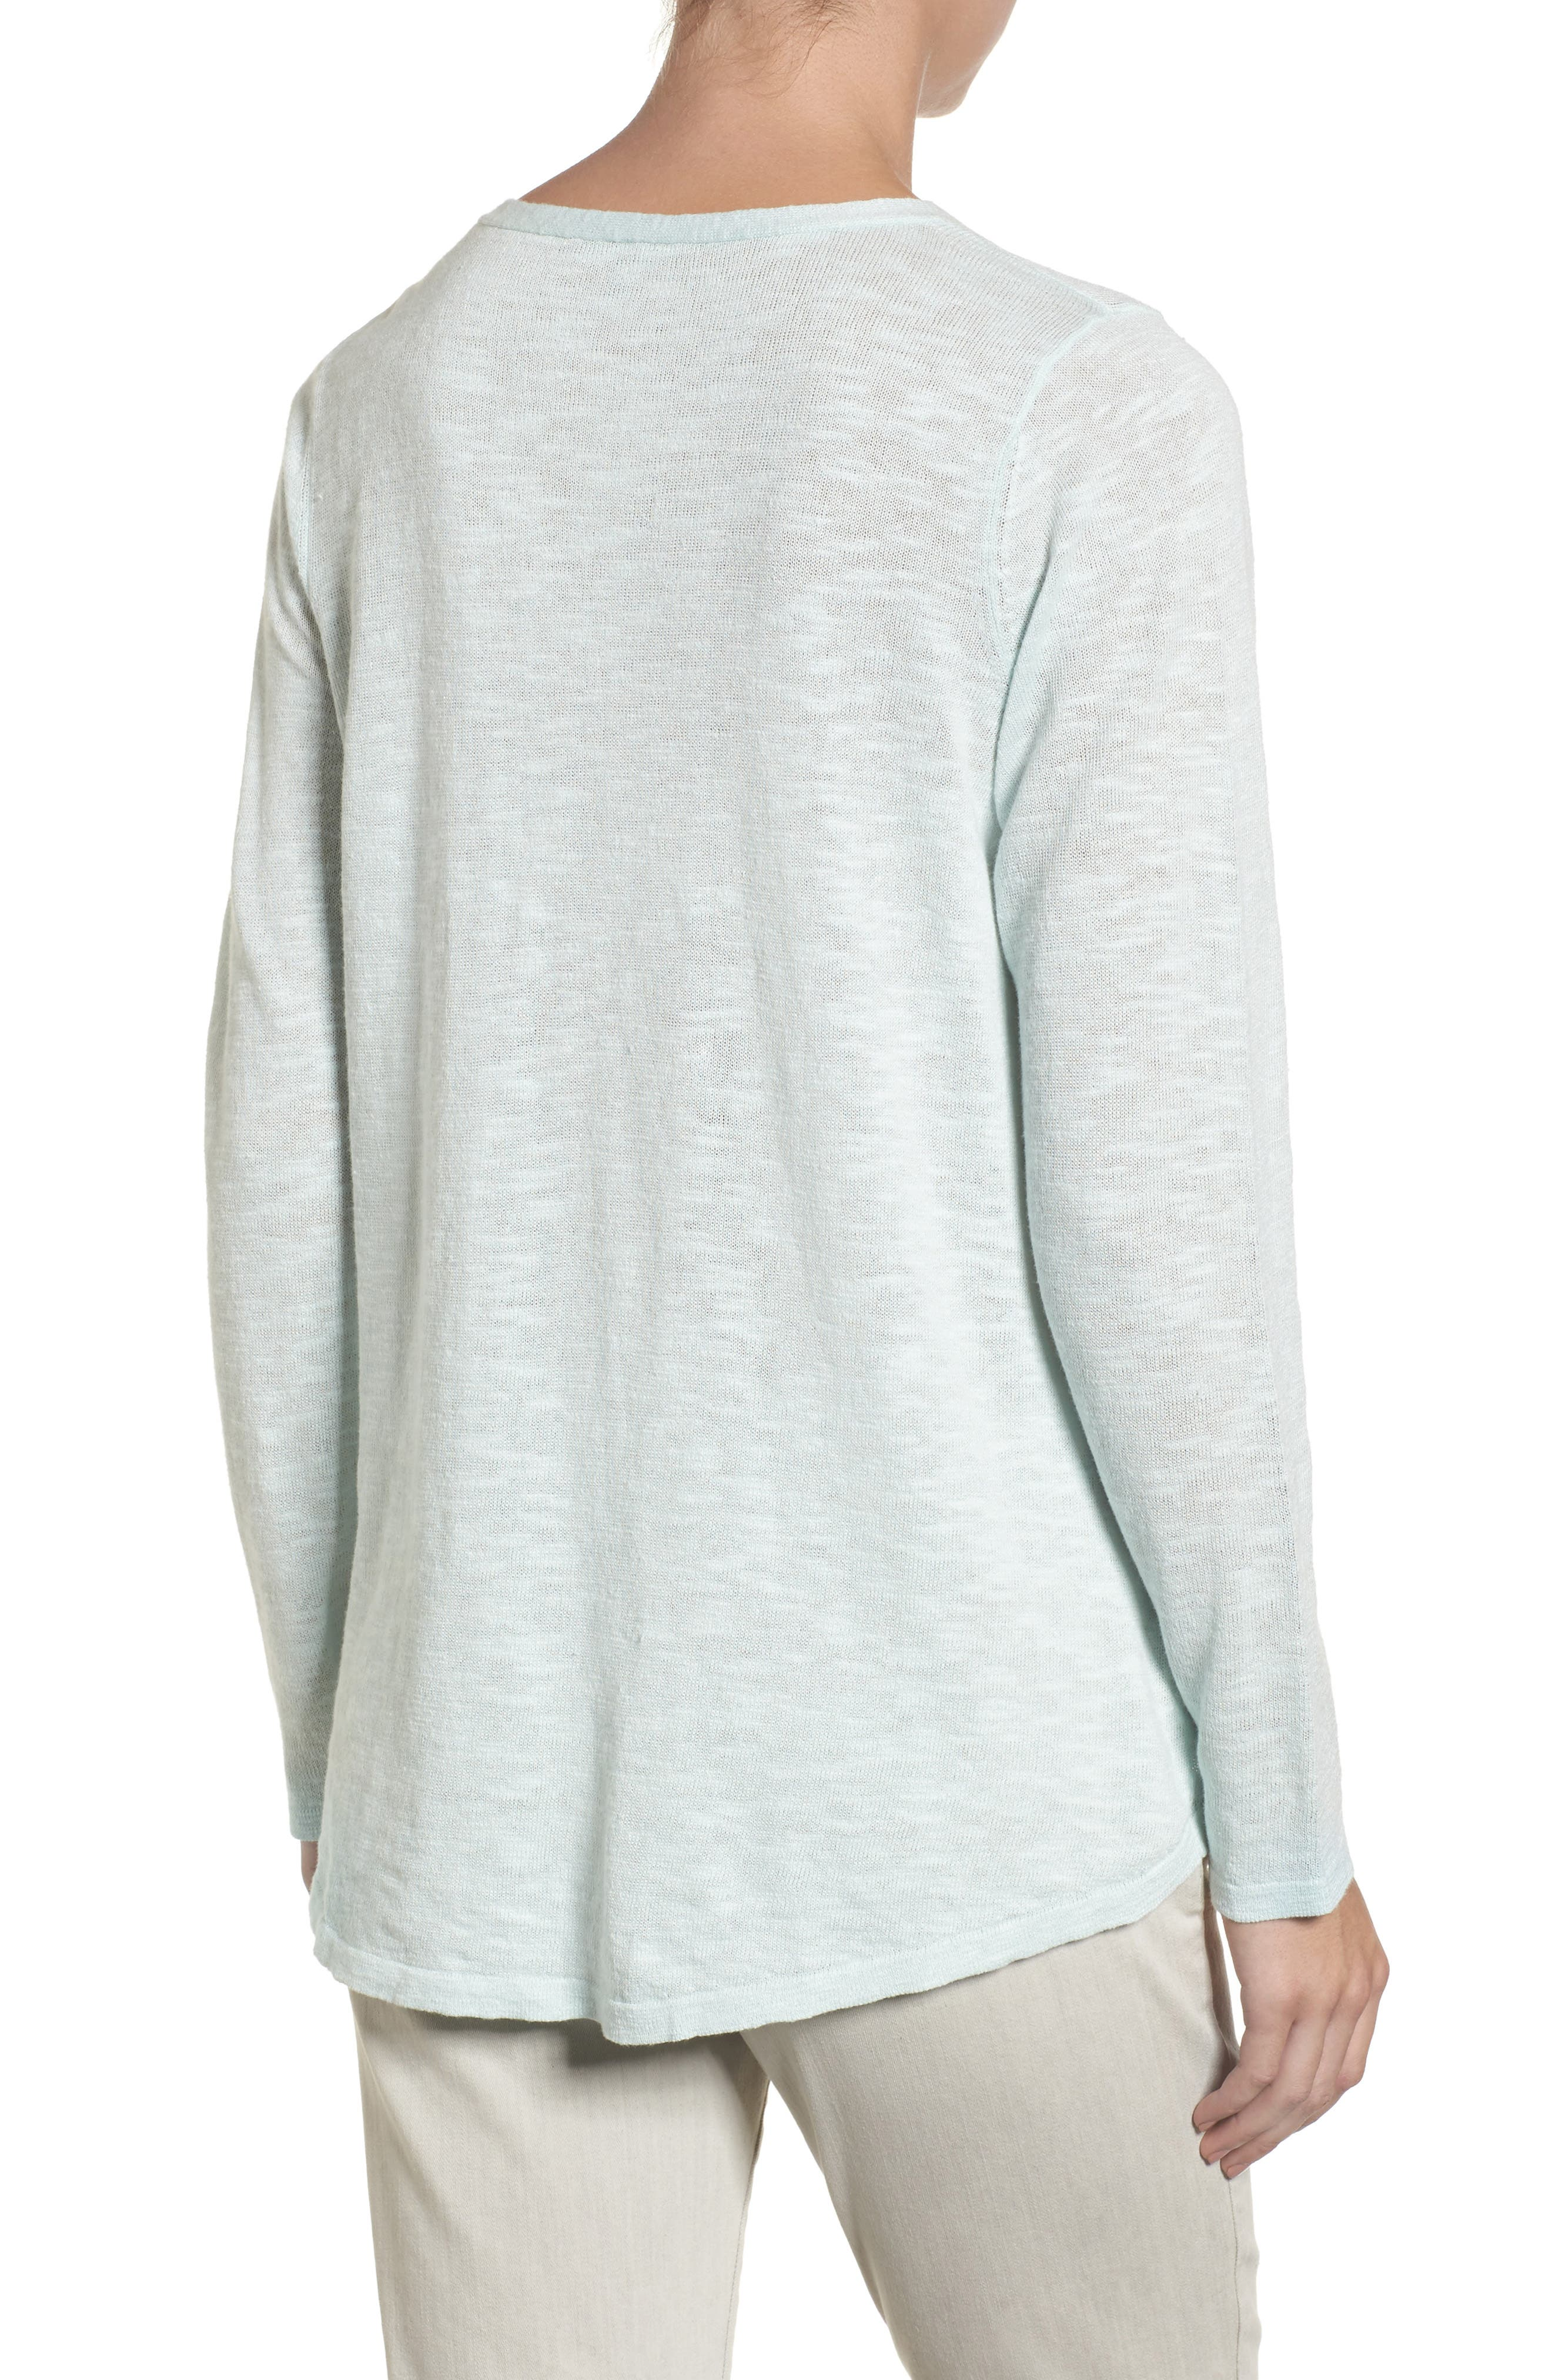 Organic Linen & Cotton V-Neck Sweater,                             Alternate thumbnail 6, color,